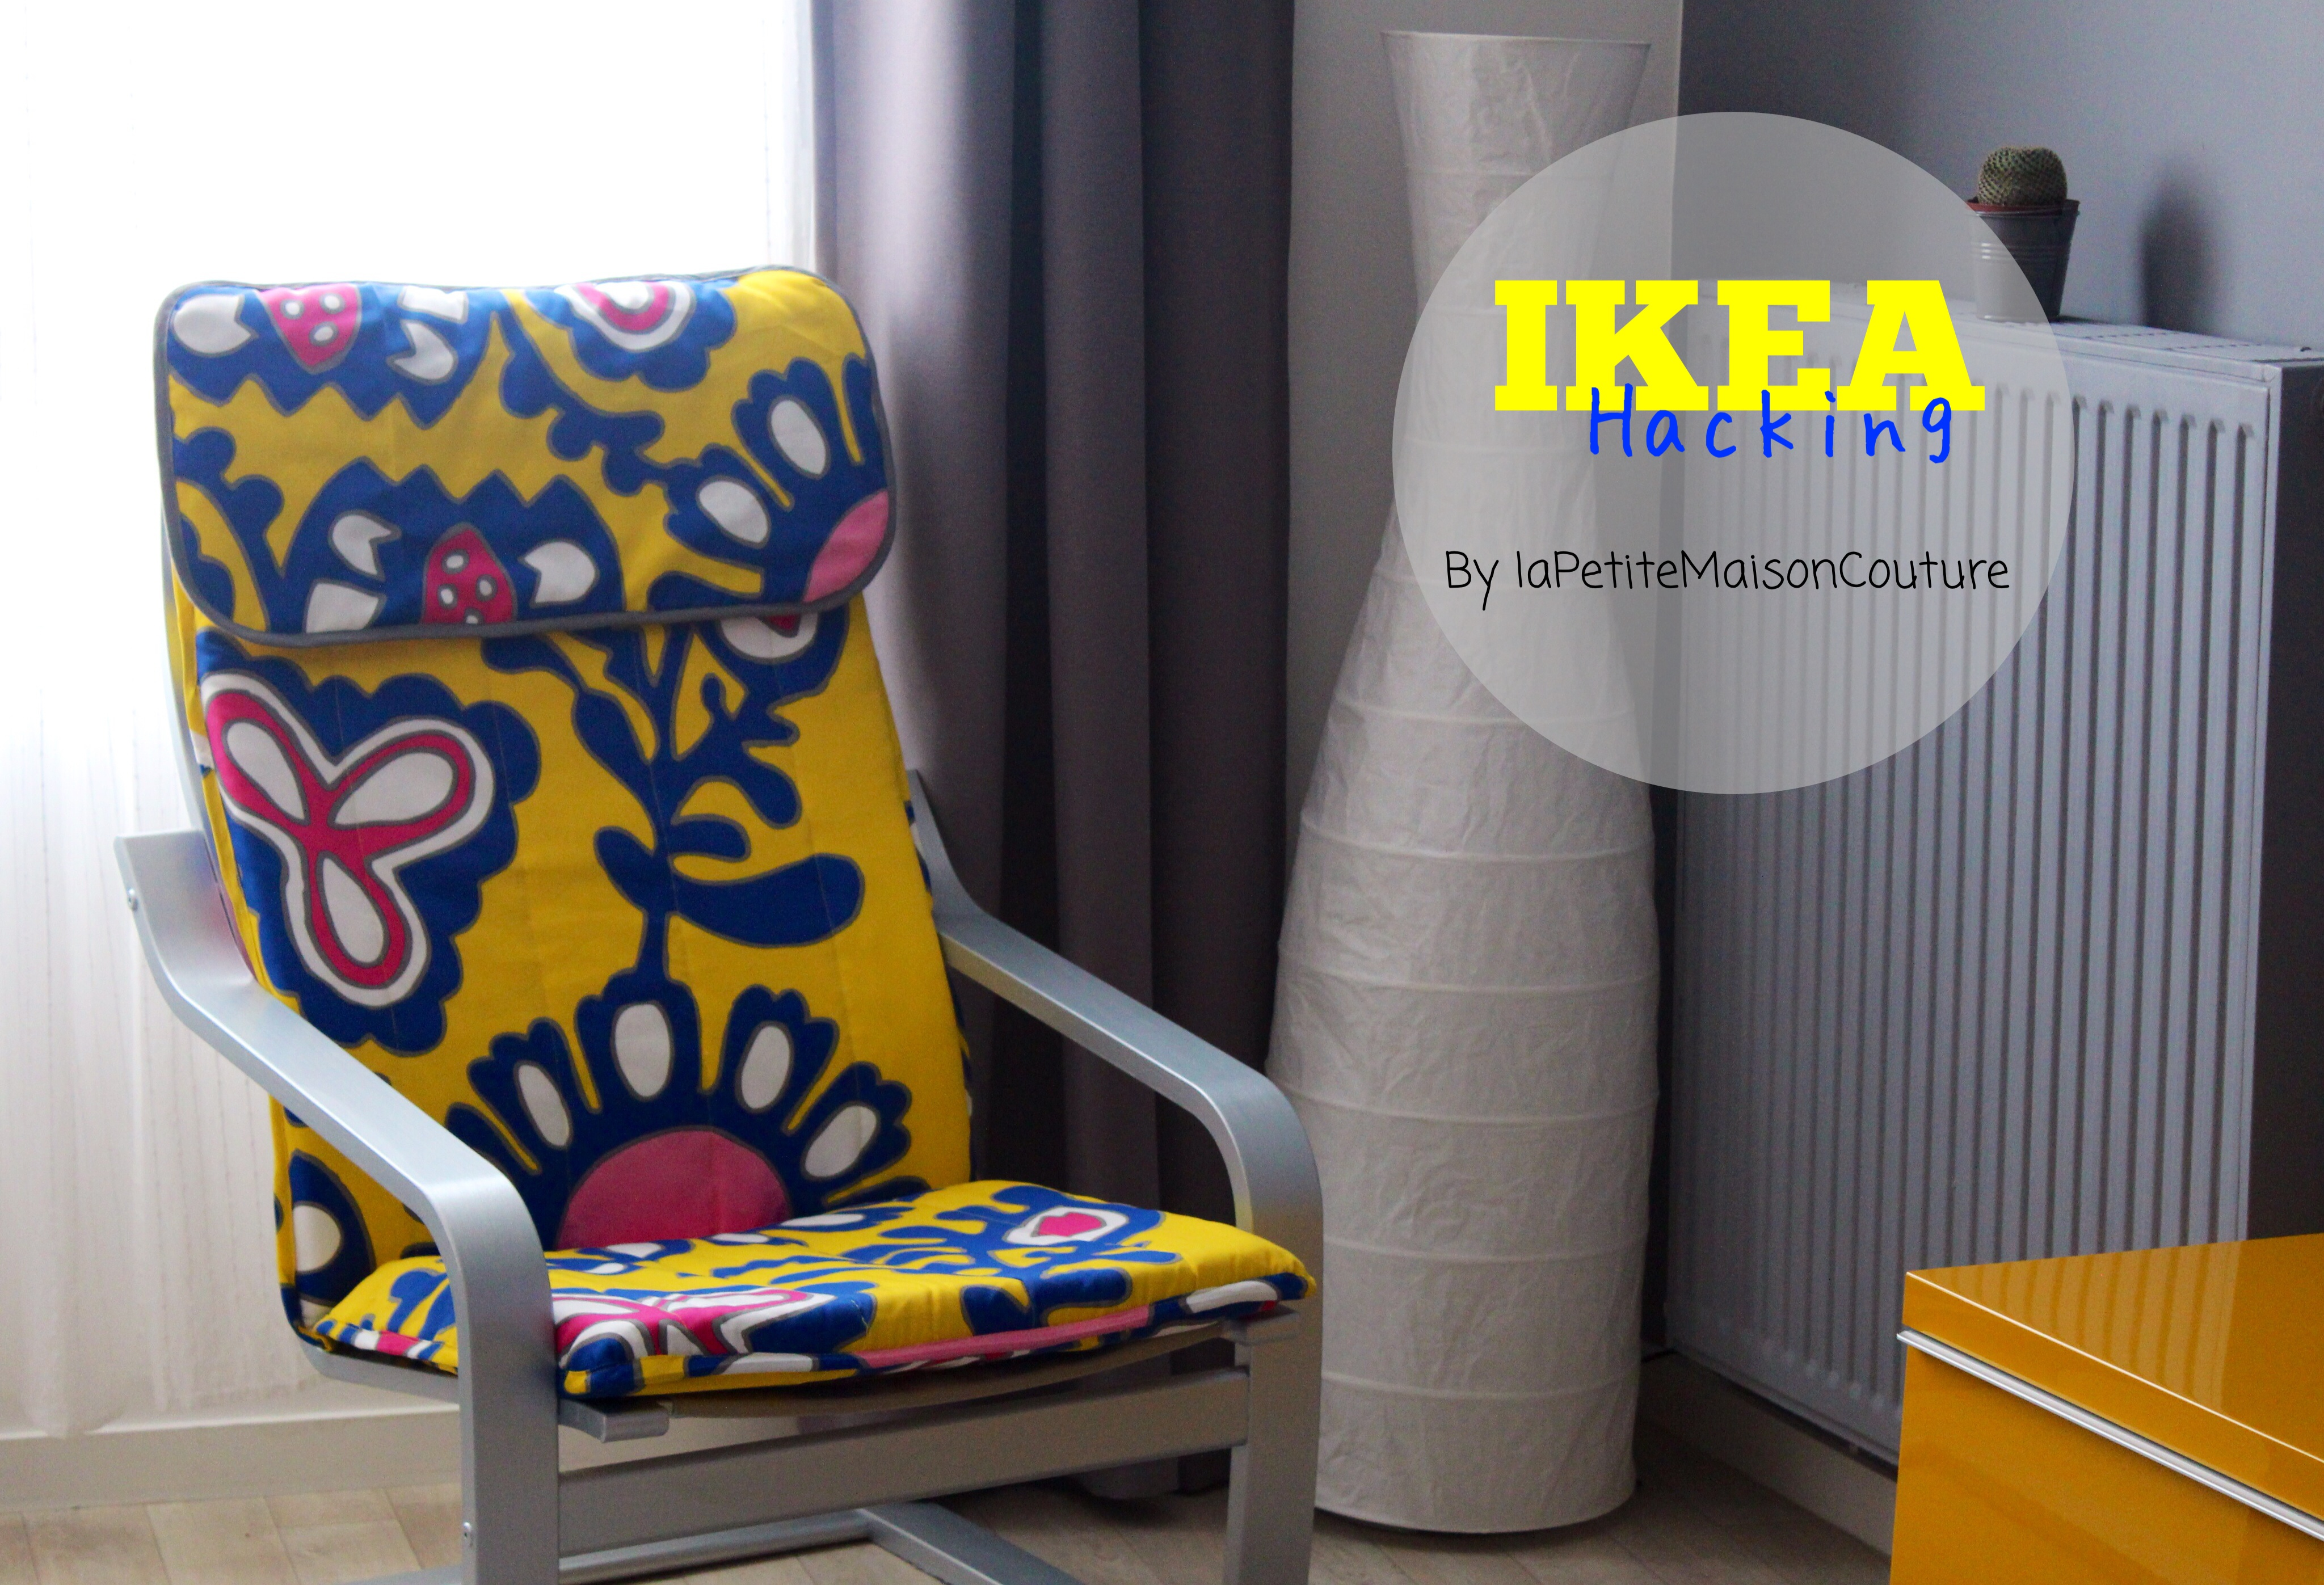 ikea hacking fauteuil po ng lapetitemaisoncouture. Black Bedroom Furniture Sets. Home Design Ideas